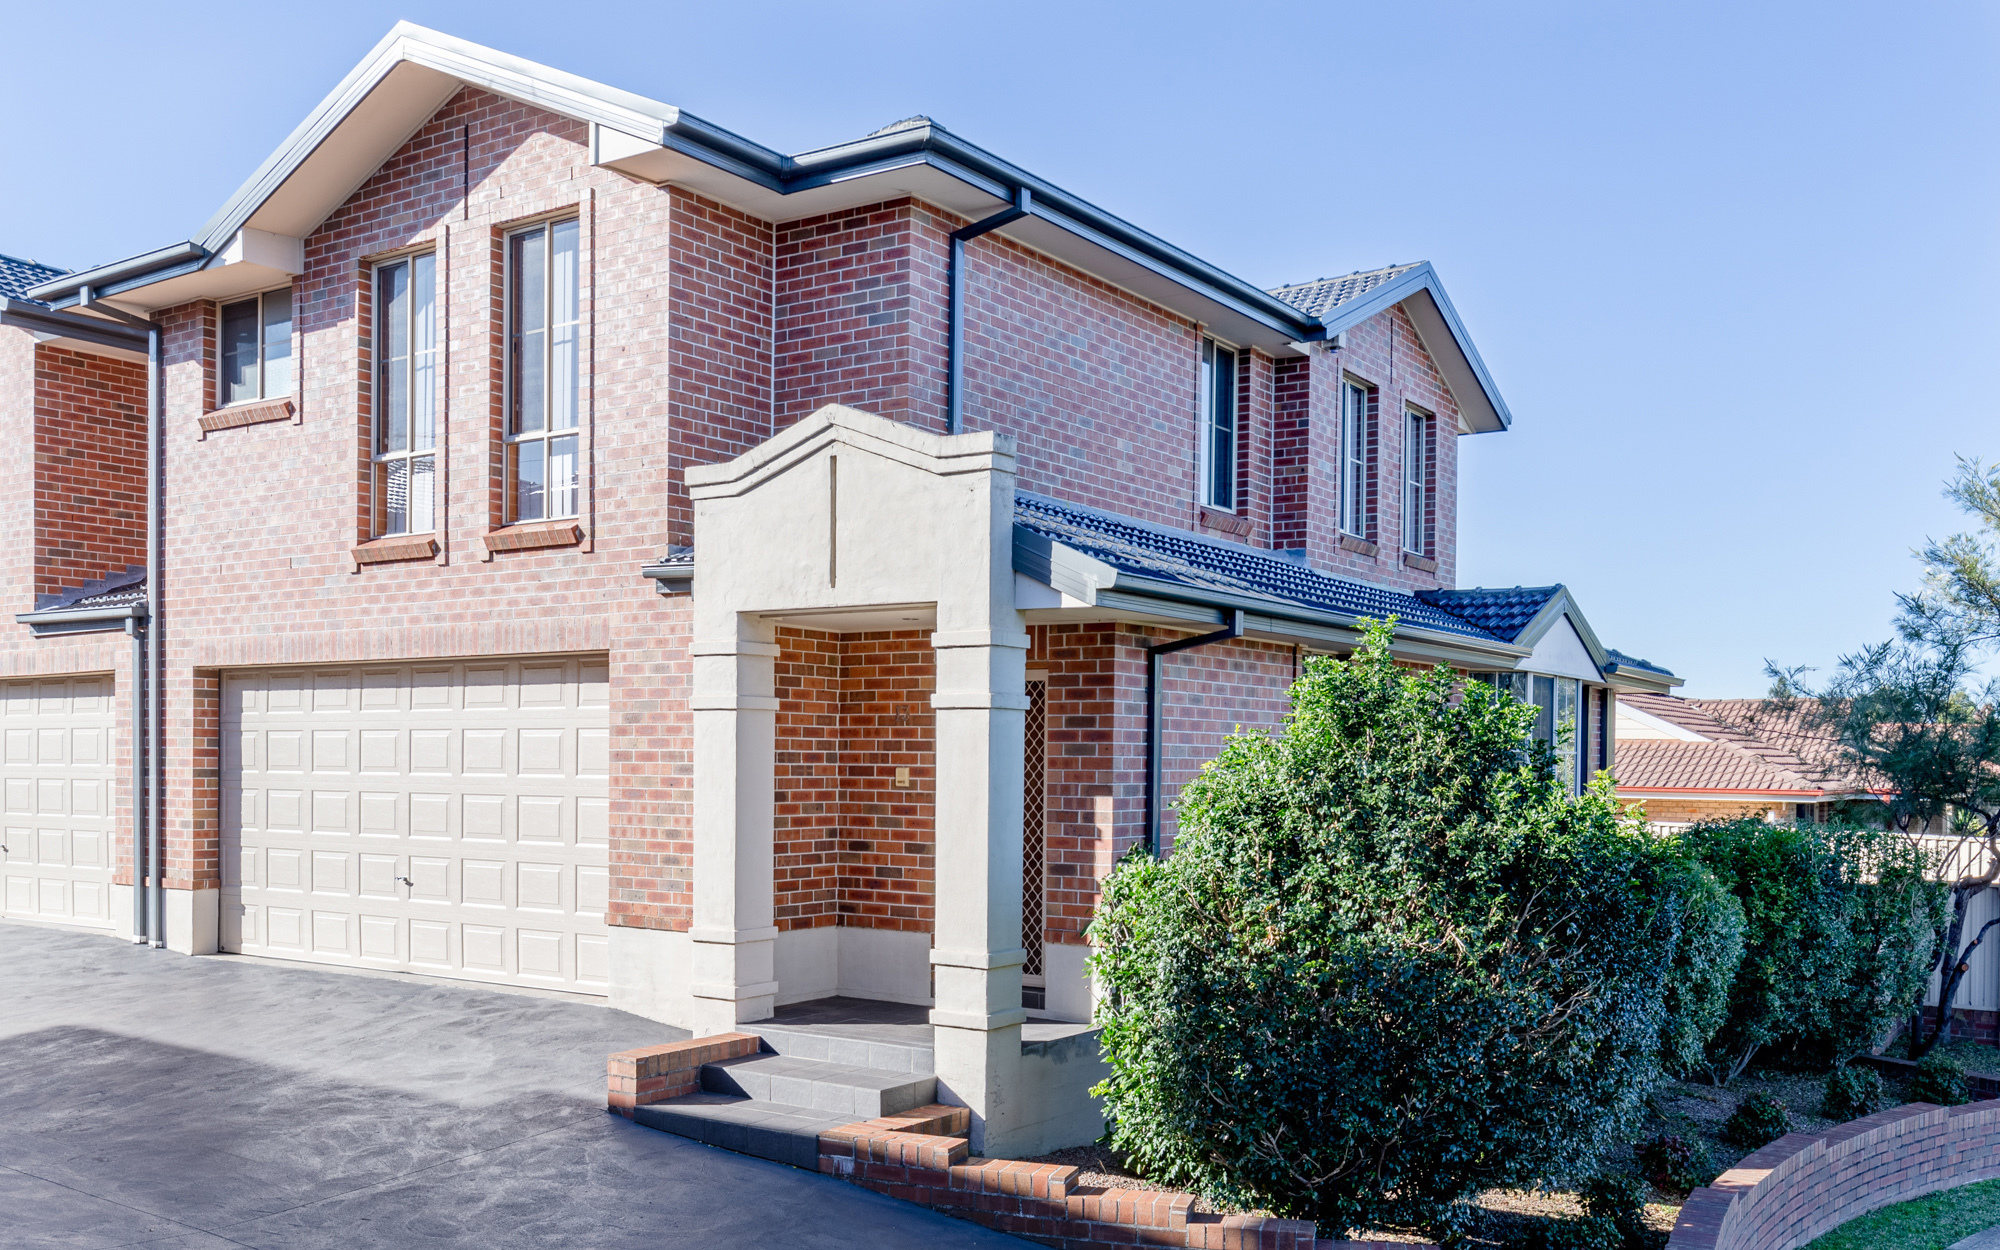 4/17-19 Greenfinch Street (also known as unit 10), Green Valley